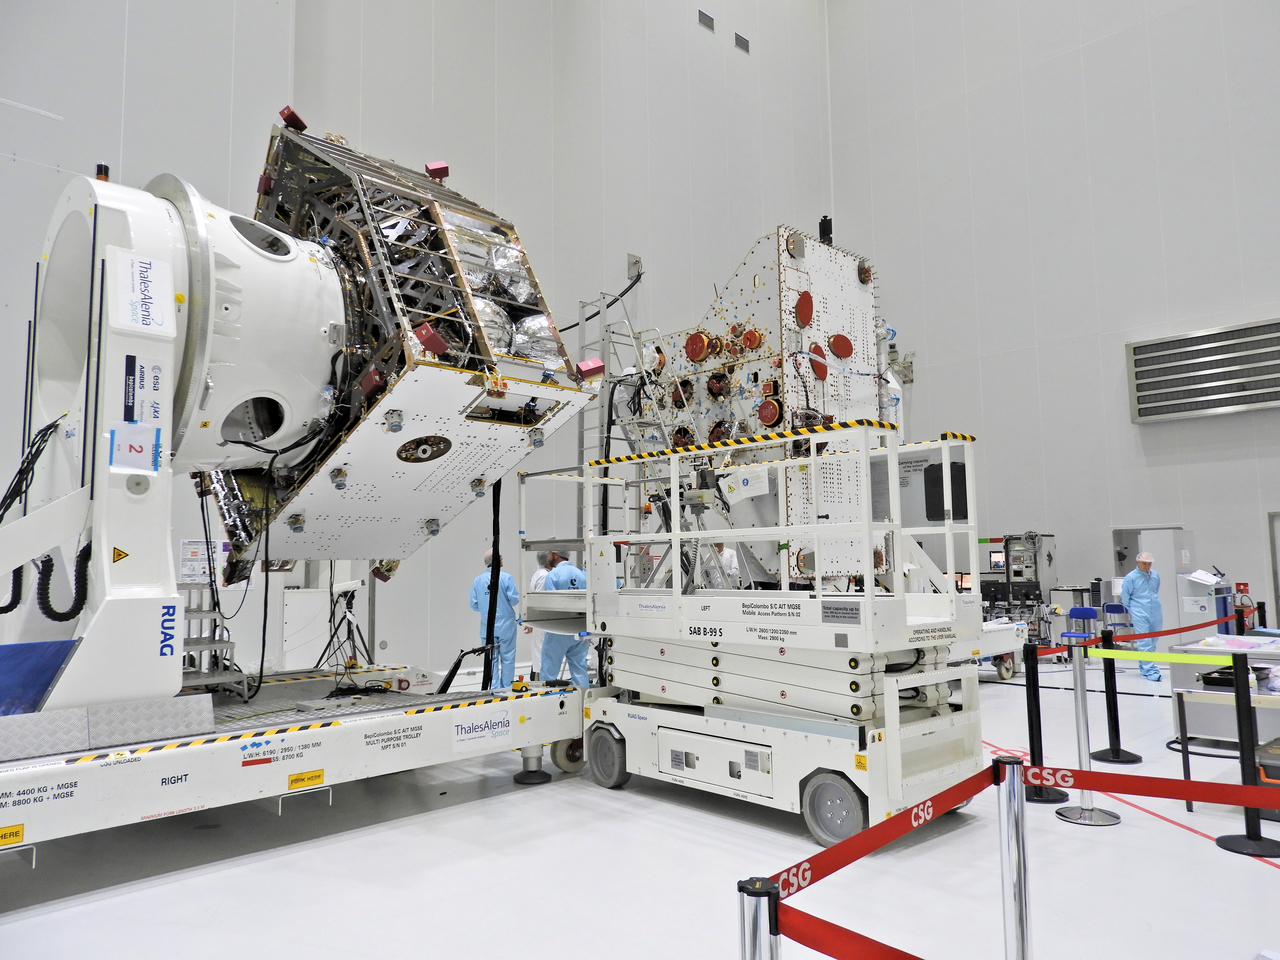 1567214463769-BepiColombo_Electrical_stack_configuration_20180517_1280.jpg